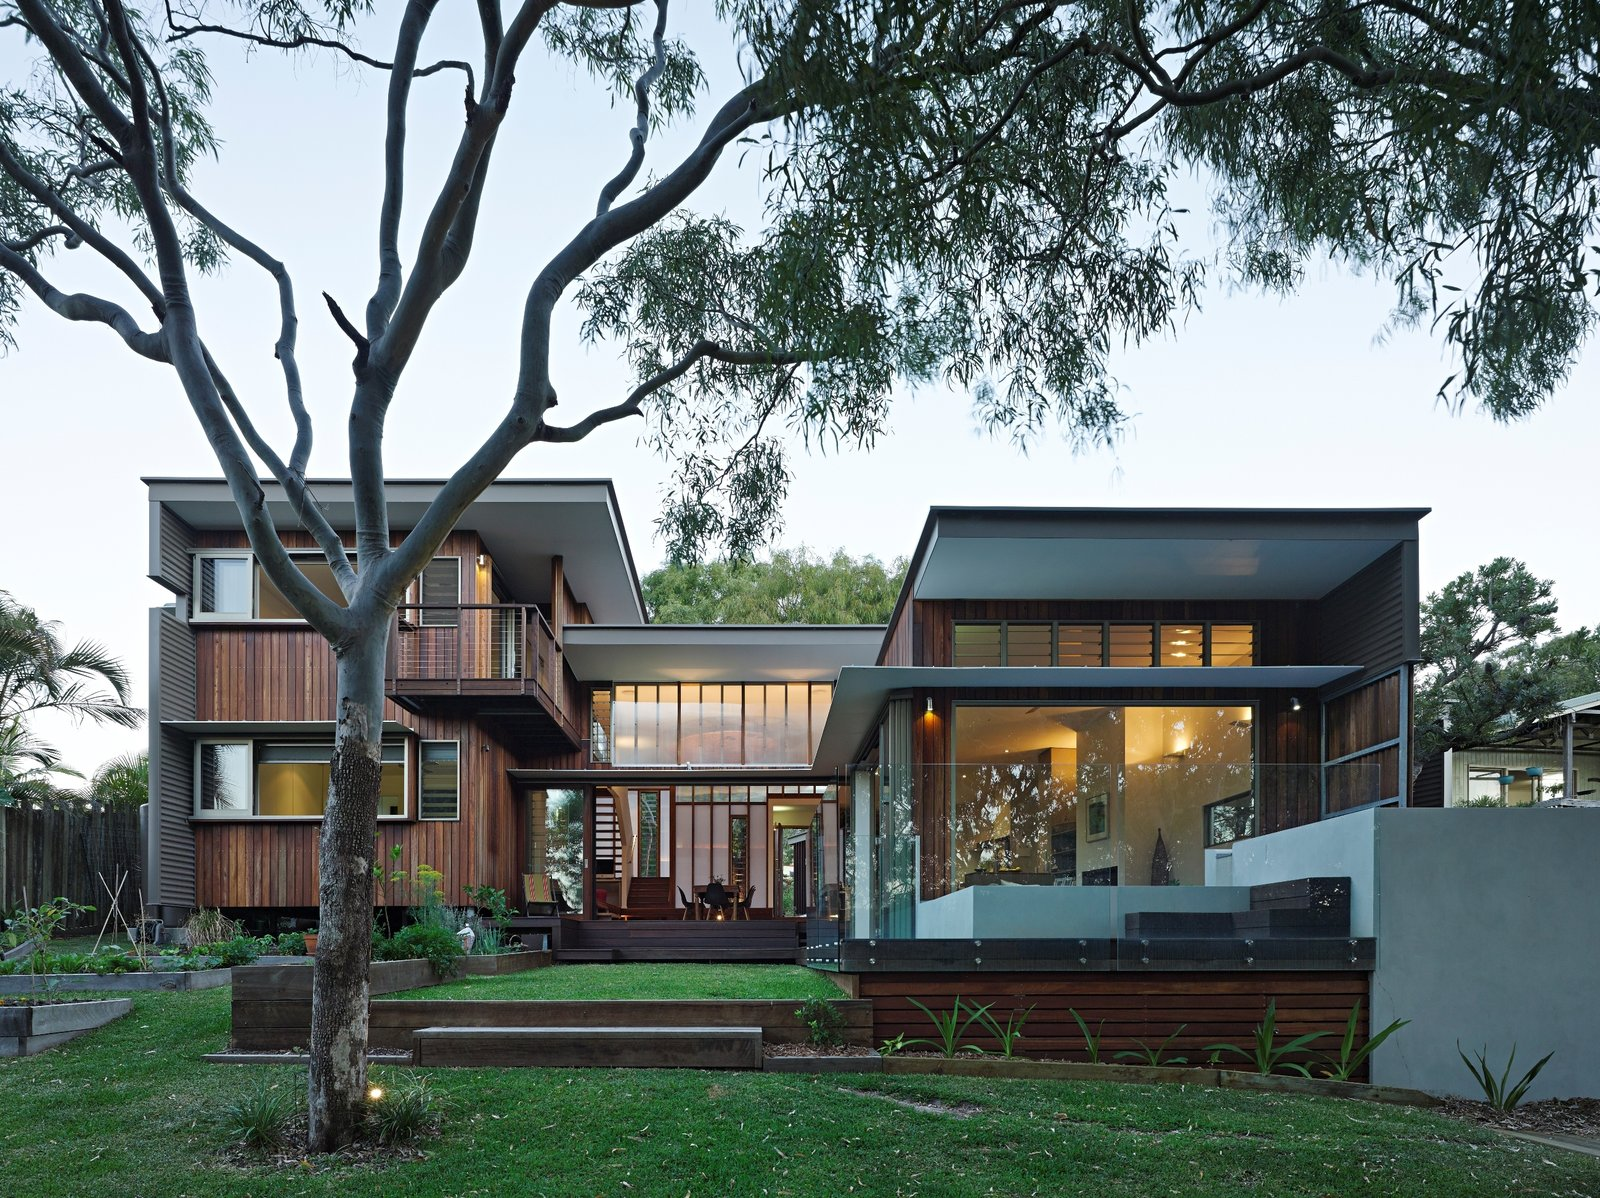 Exterior, House Building Type, Wood Siding Material, and Flat RoofLine  Photo 7 of 10 in Vegetation Cocoons This Tranquil Beach House in Australia